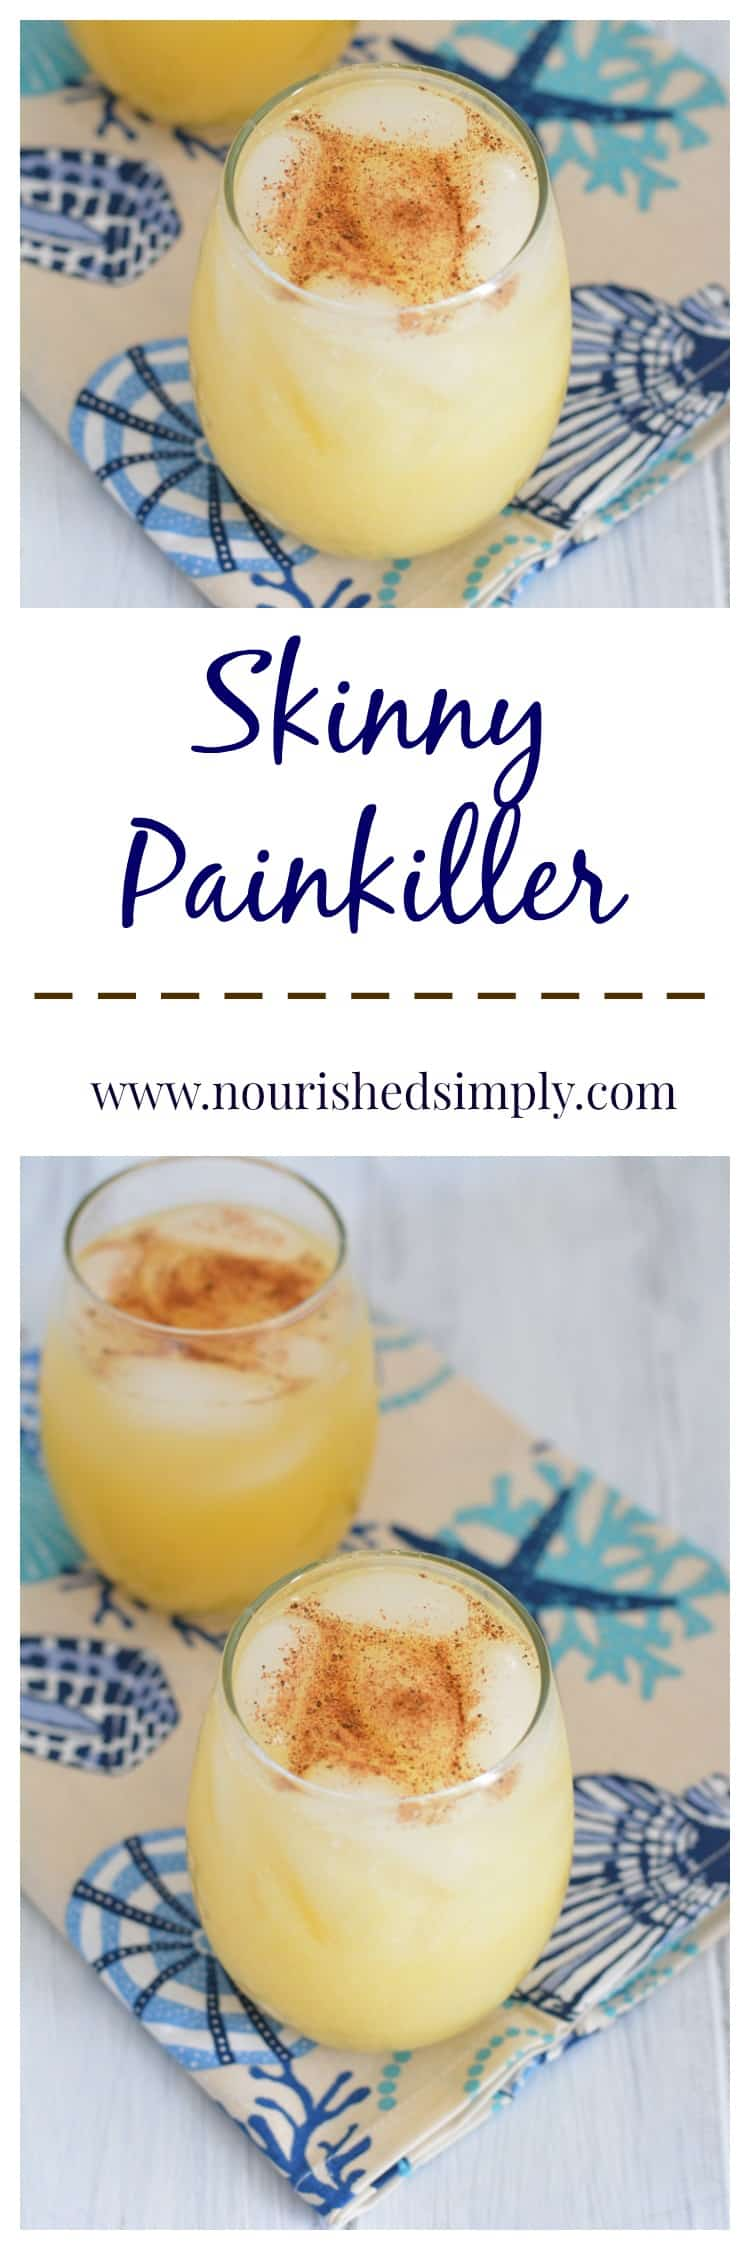 Skinny Painkiller is far lower in calories and fat than the traditional island cocktail.